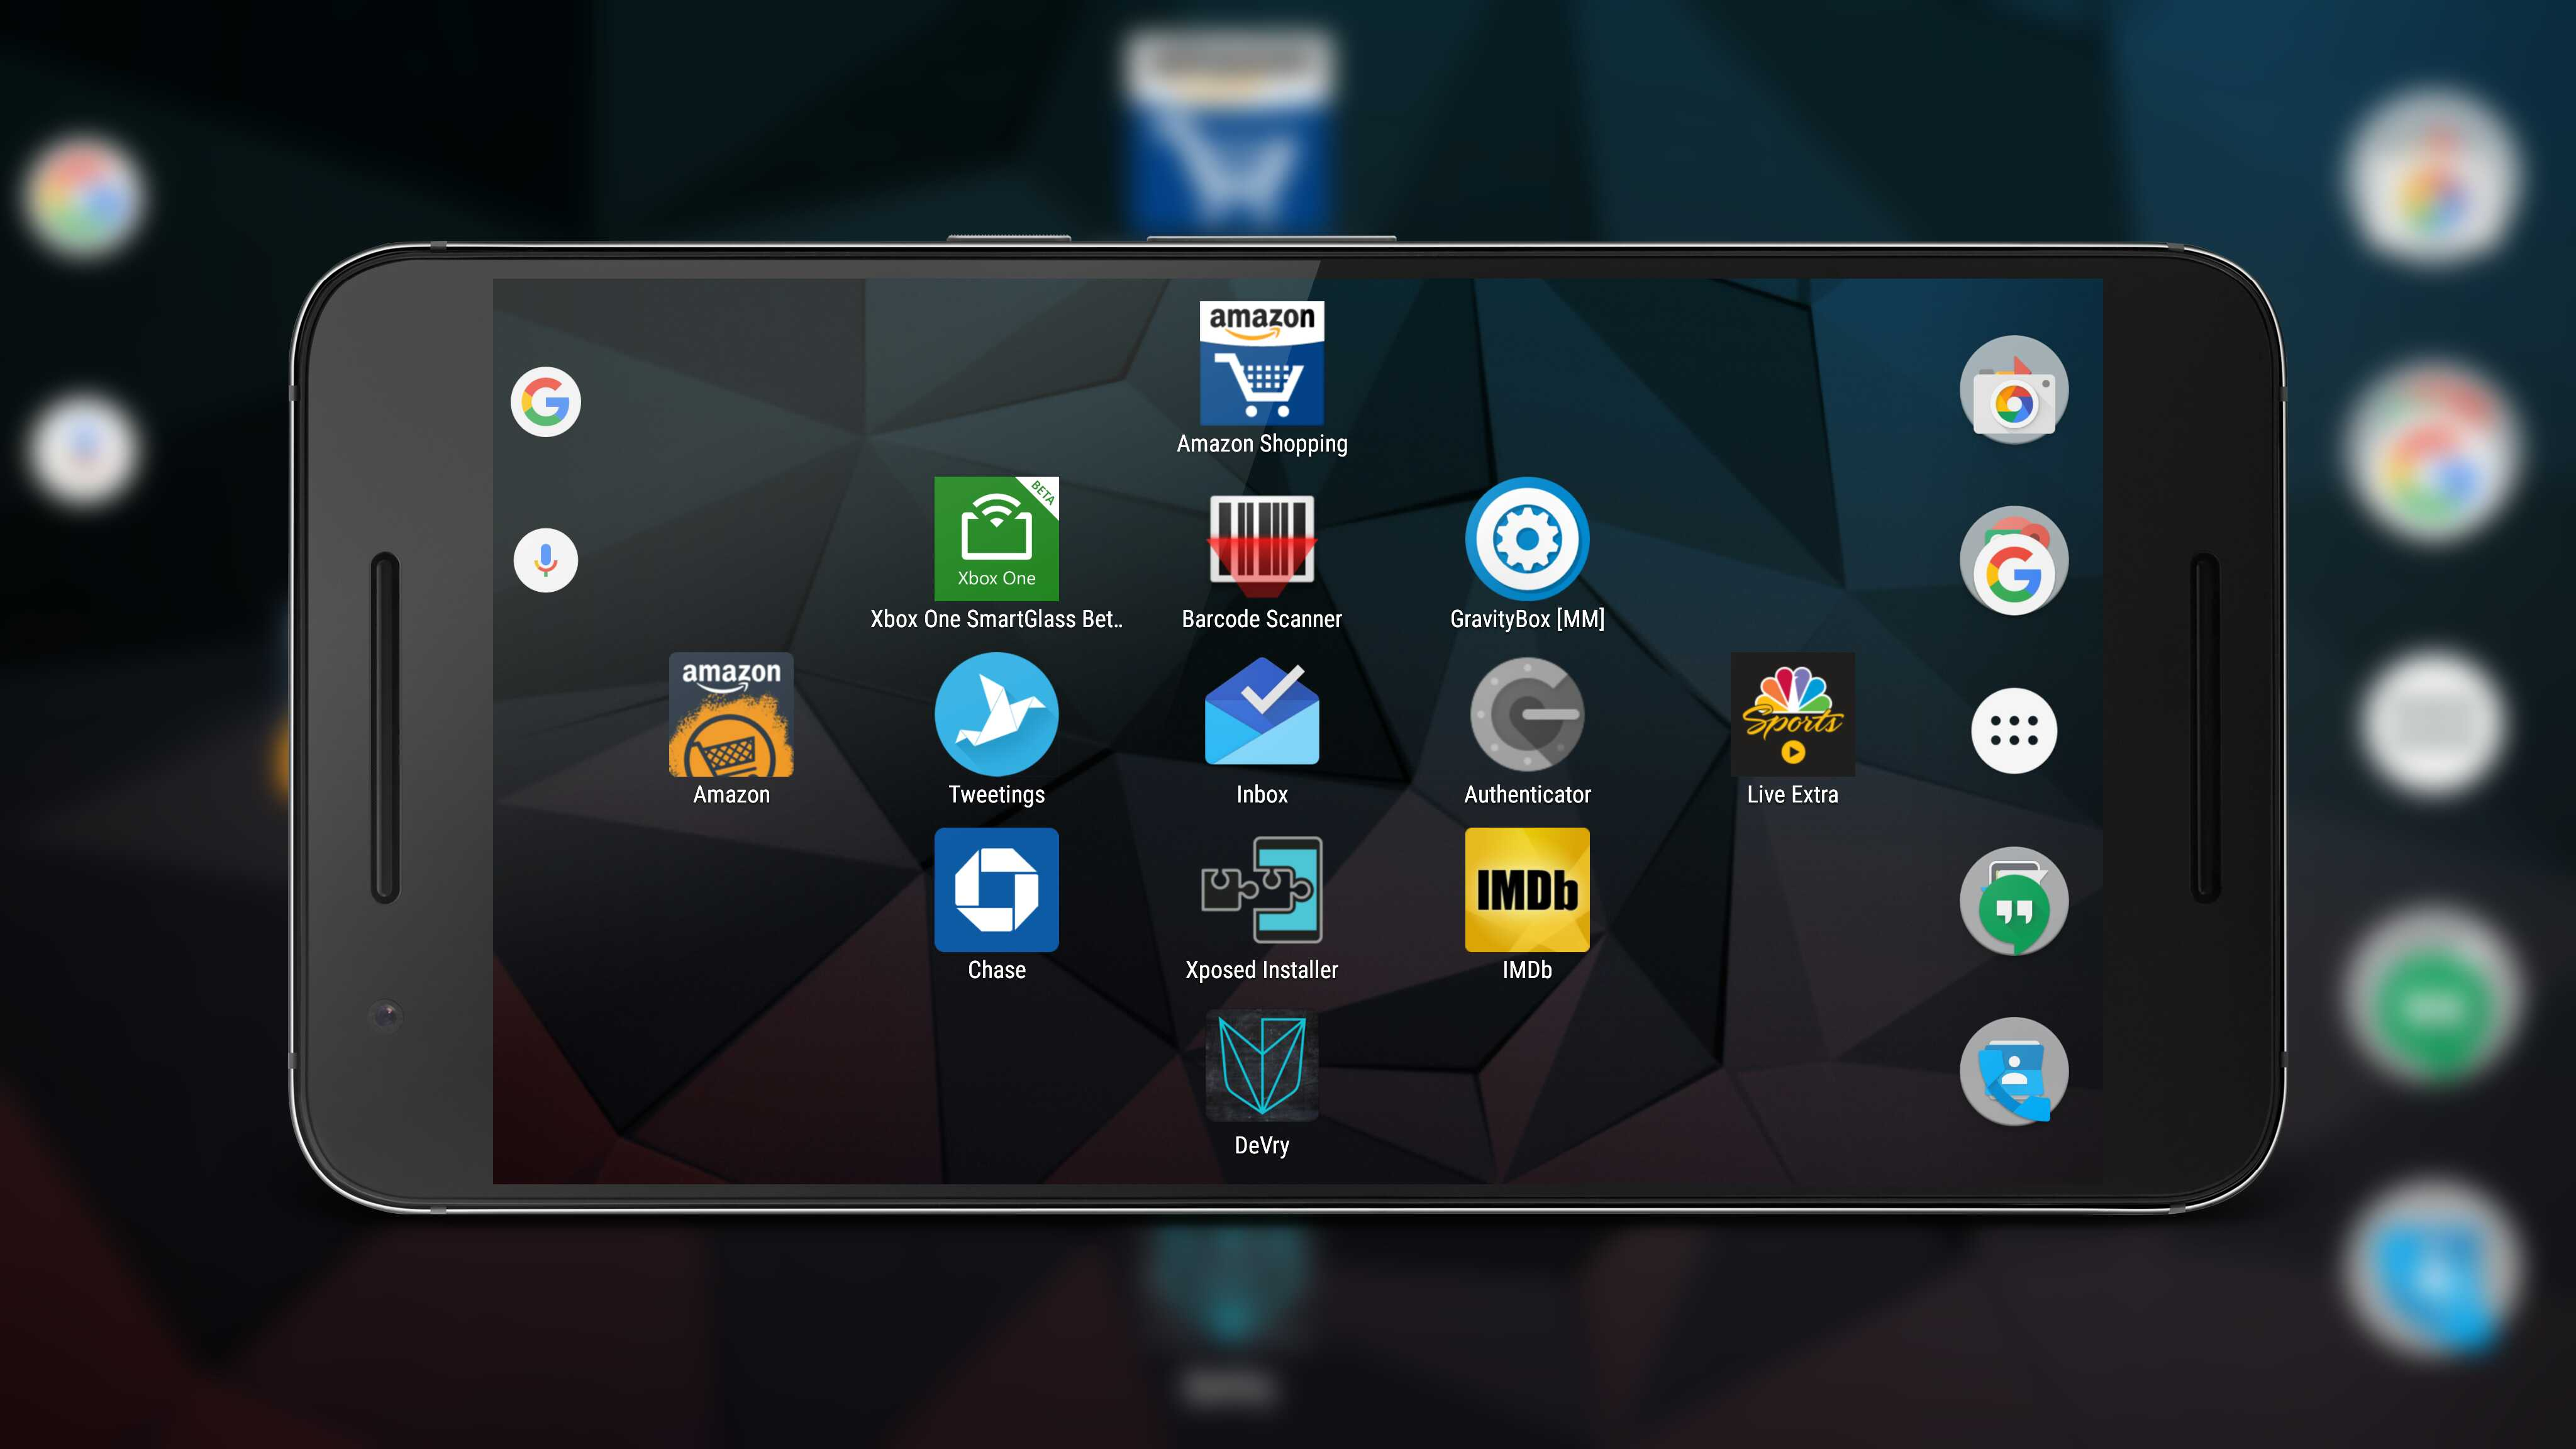 Day One Apps: The first apps we install on every new Android (Volume 6)